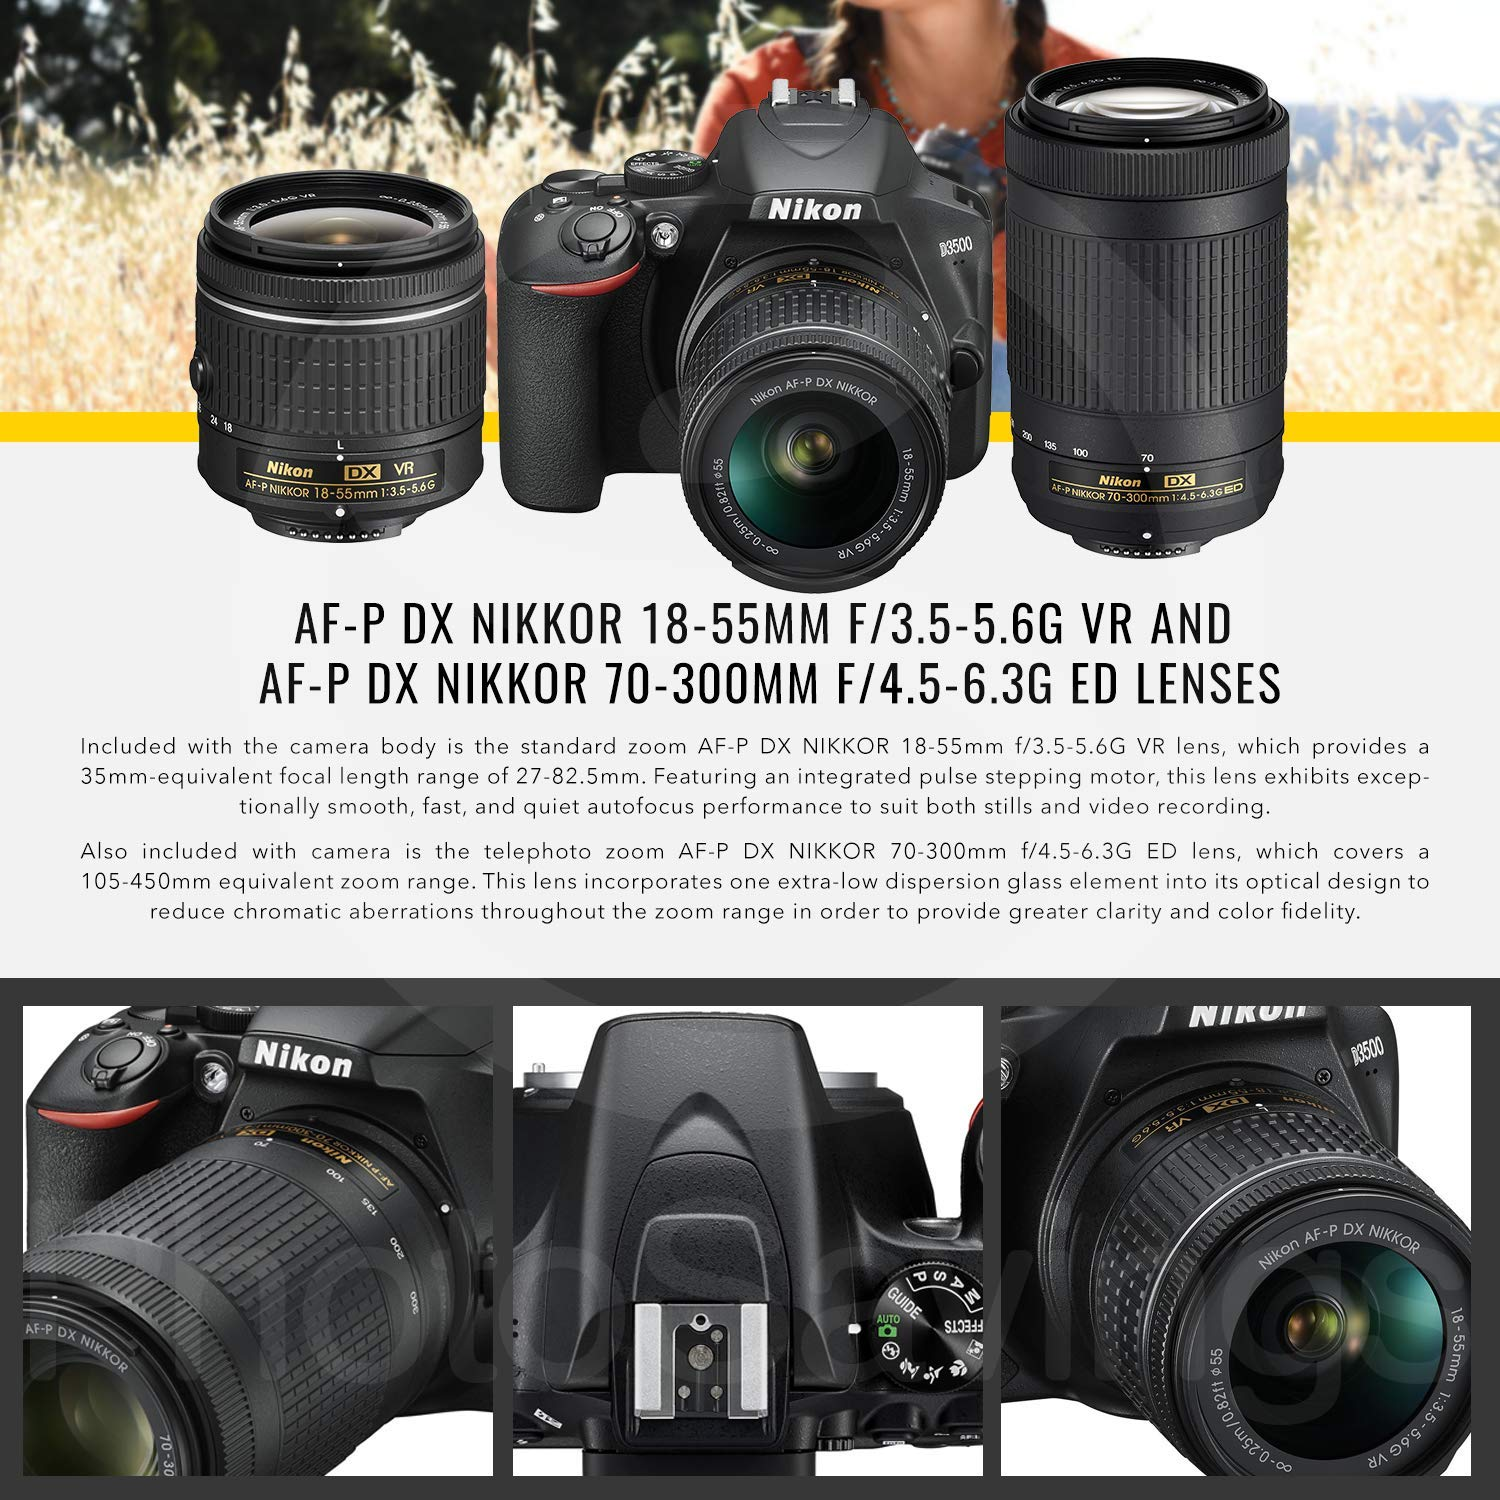 Nikon D3500 DSLR Camera with 18-55mm and 70-300mm Lenses + 32GB Card, Tripod, Flash, and Bundle by Photo Savings (Image #4)